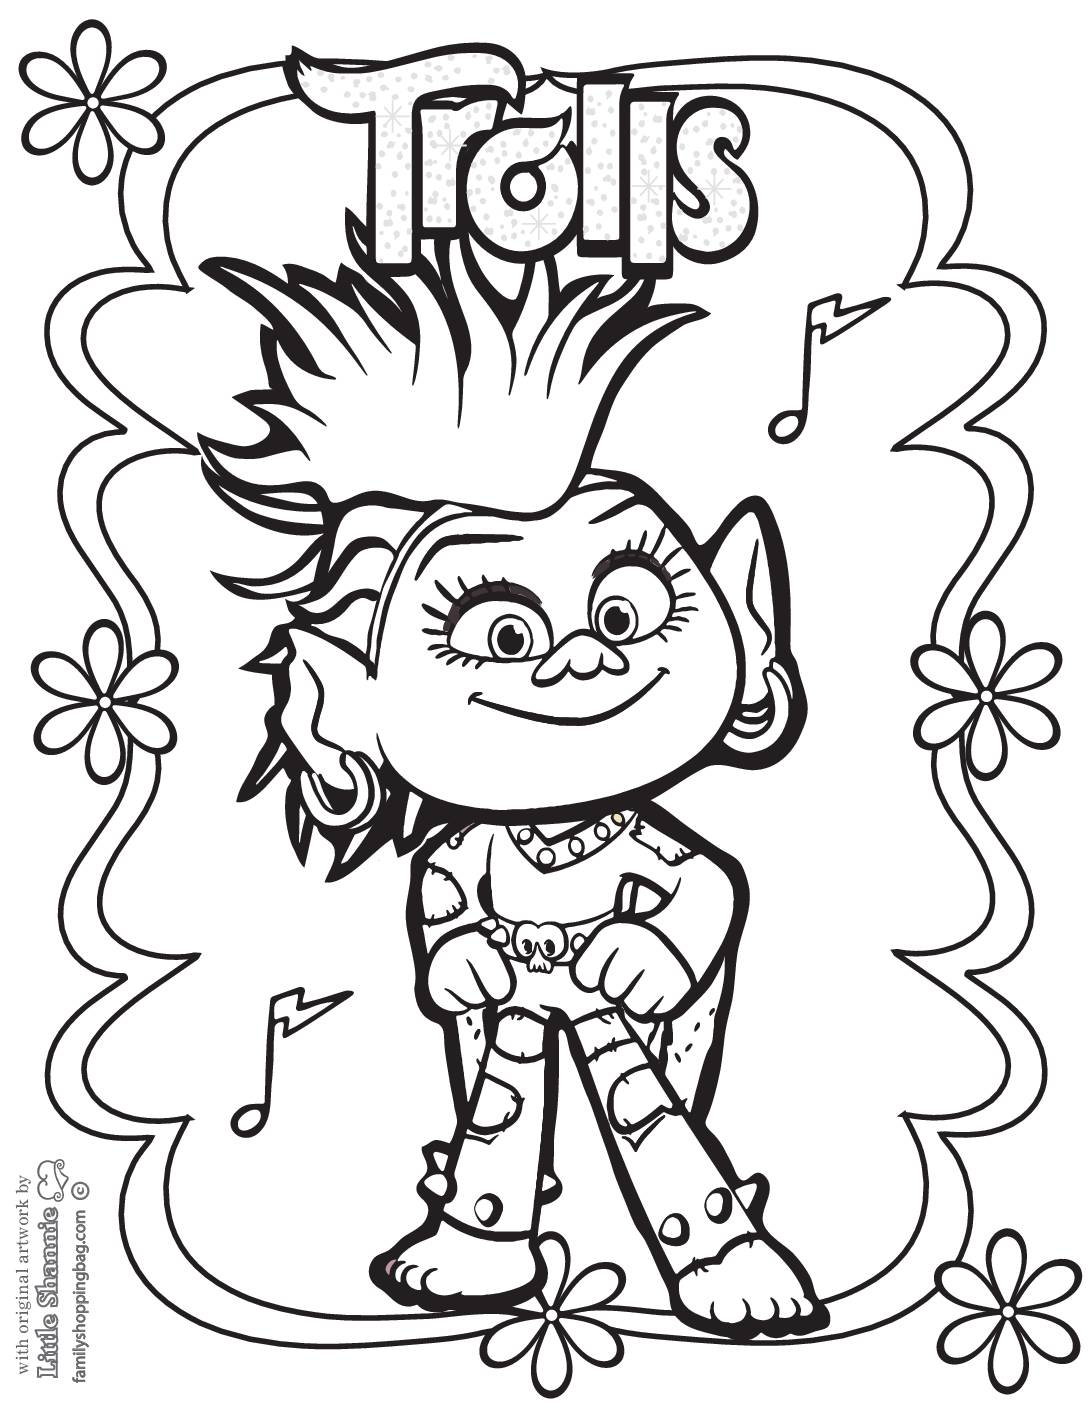 Coloring Page 3 Trolls